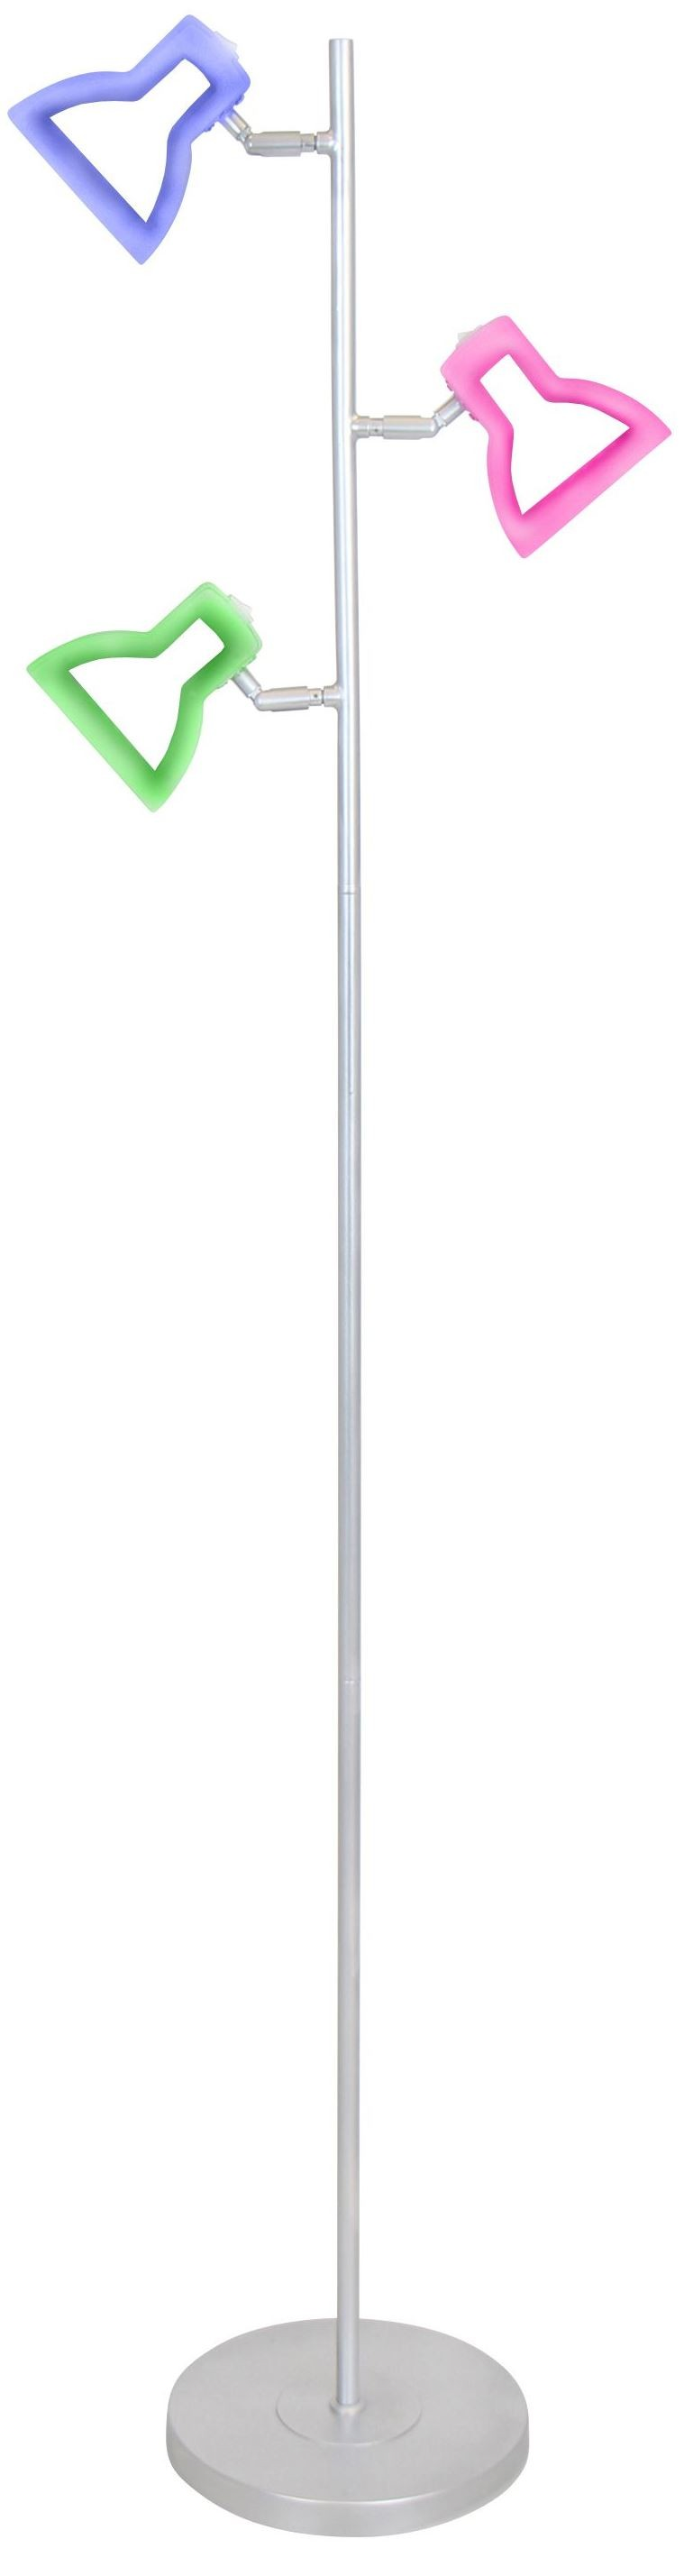 2d led tree floor lamp from lumisource ls led 2d flr for Led plant floor lamp